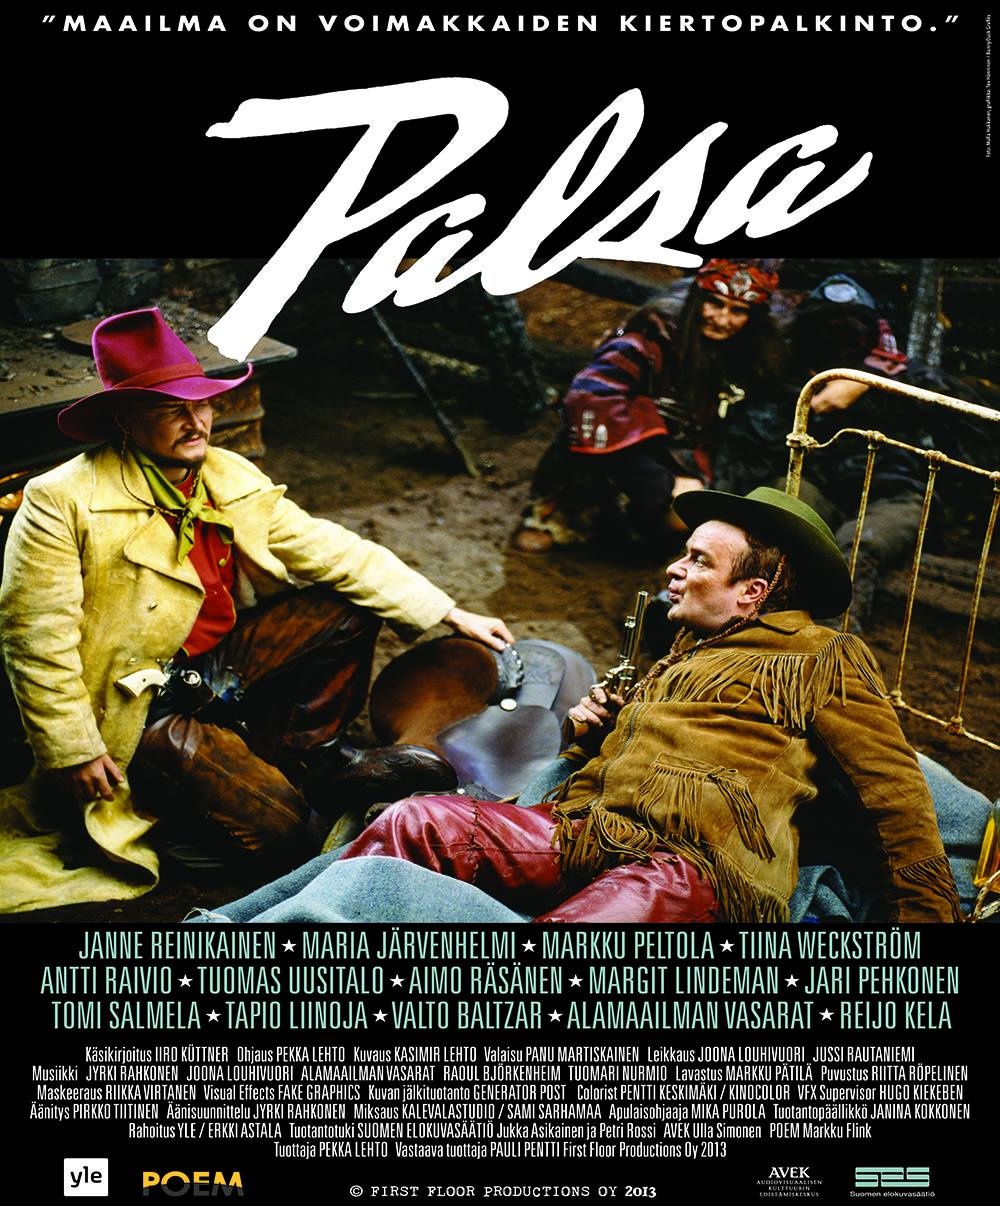 Palsa – The Surrealist Dir. Pekka Lehto Co-Edited with Joona Louhivuori First Floor Productions, 12.9.2914